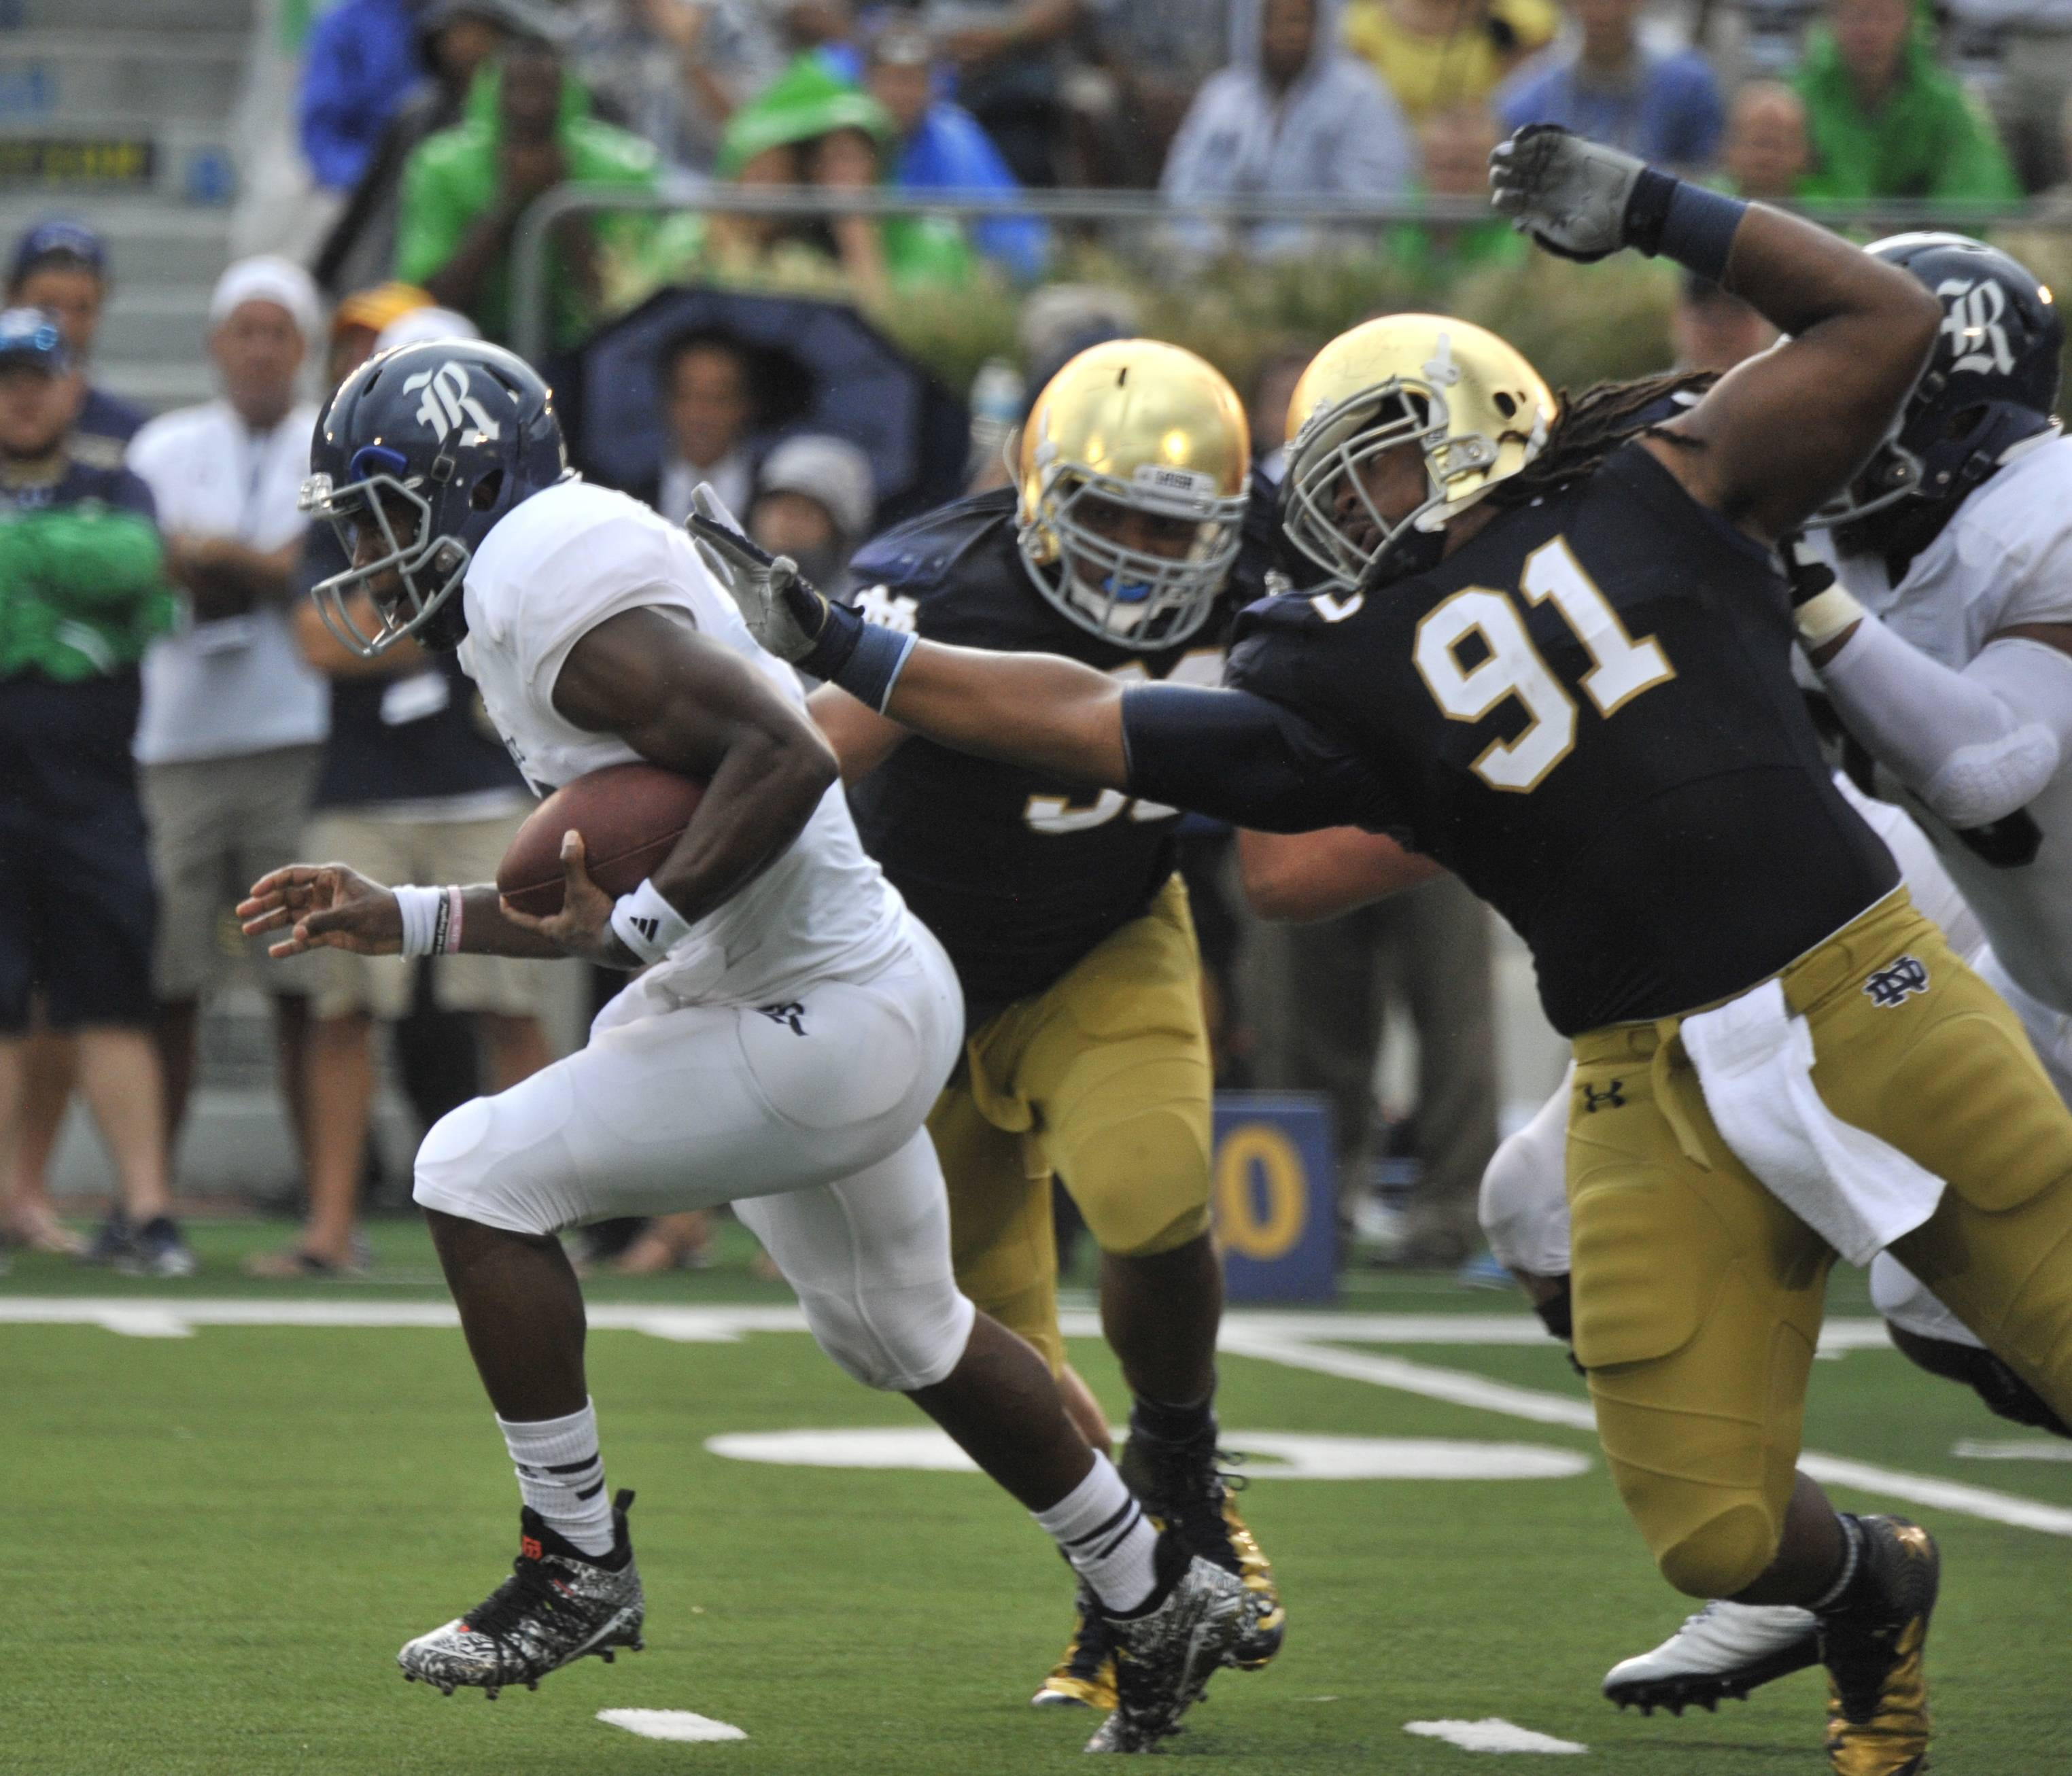 Rice quarterback Driphus Jackson is tackled by Notre Dame defensive end Sheldon Day during an NCAA football game with Notre Dame Saturday, Aug. 30, 2014 in South Bend, Ind. (AP Photo/Joe Raymond)